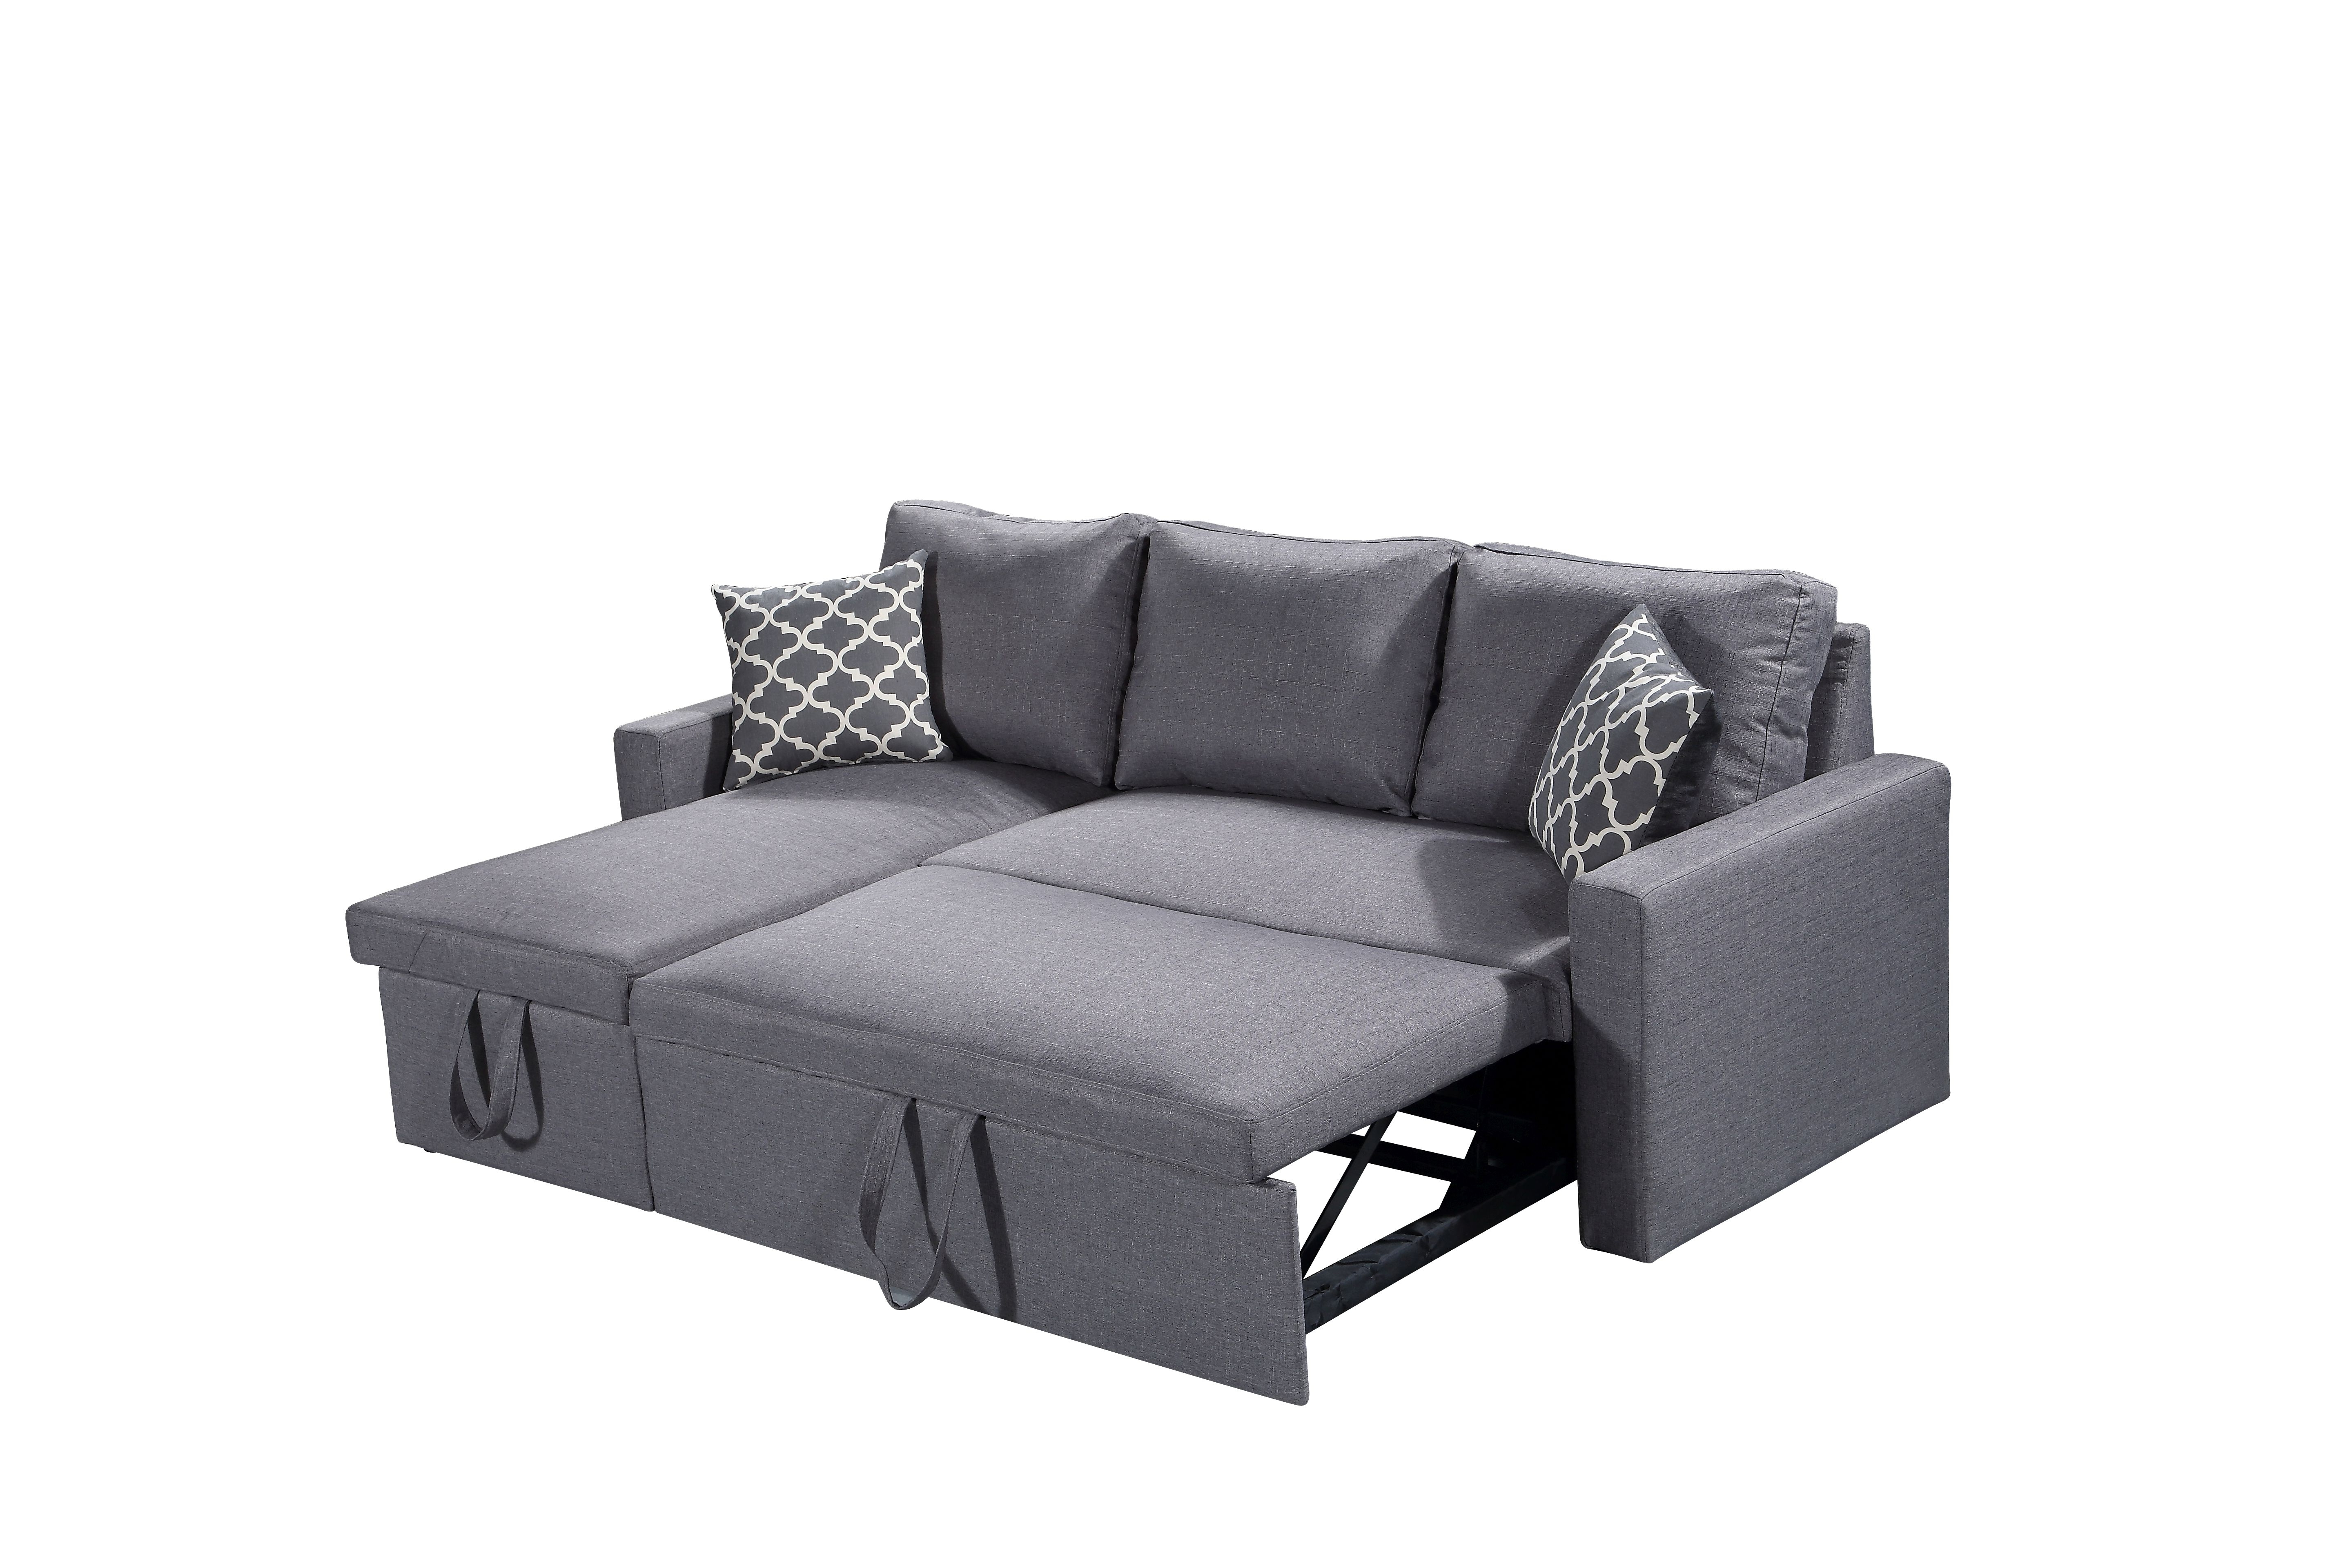 Thecreativescientist In Kijiji Calgary Sectional Sofas (View 18 of 20)